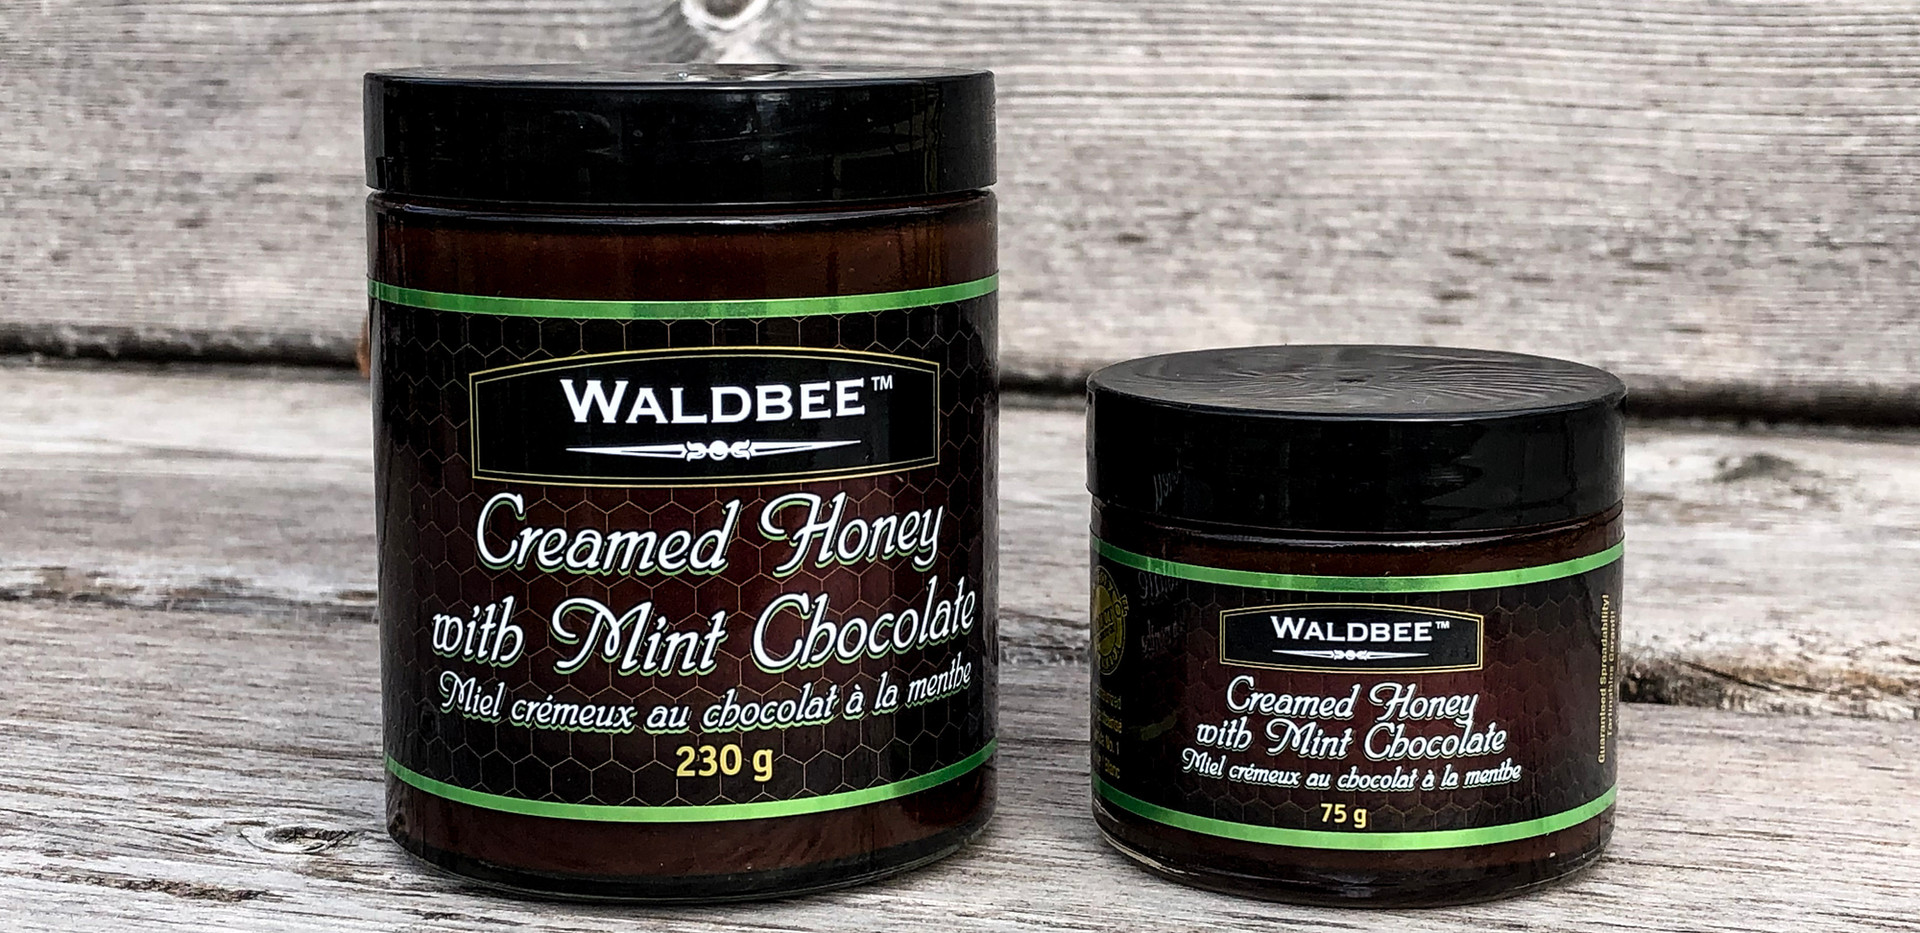 Creamed Honey with Mint Chocolate